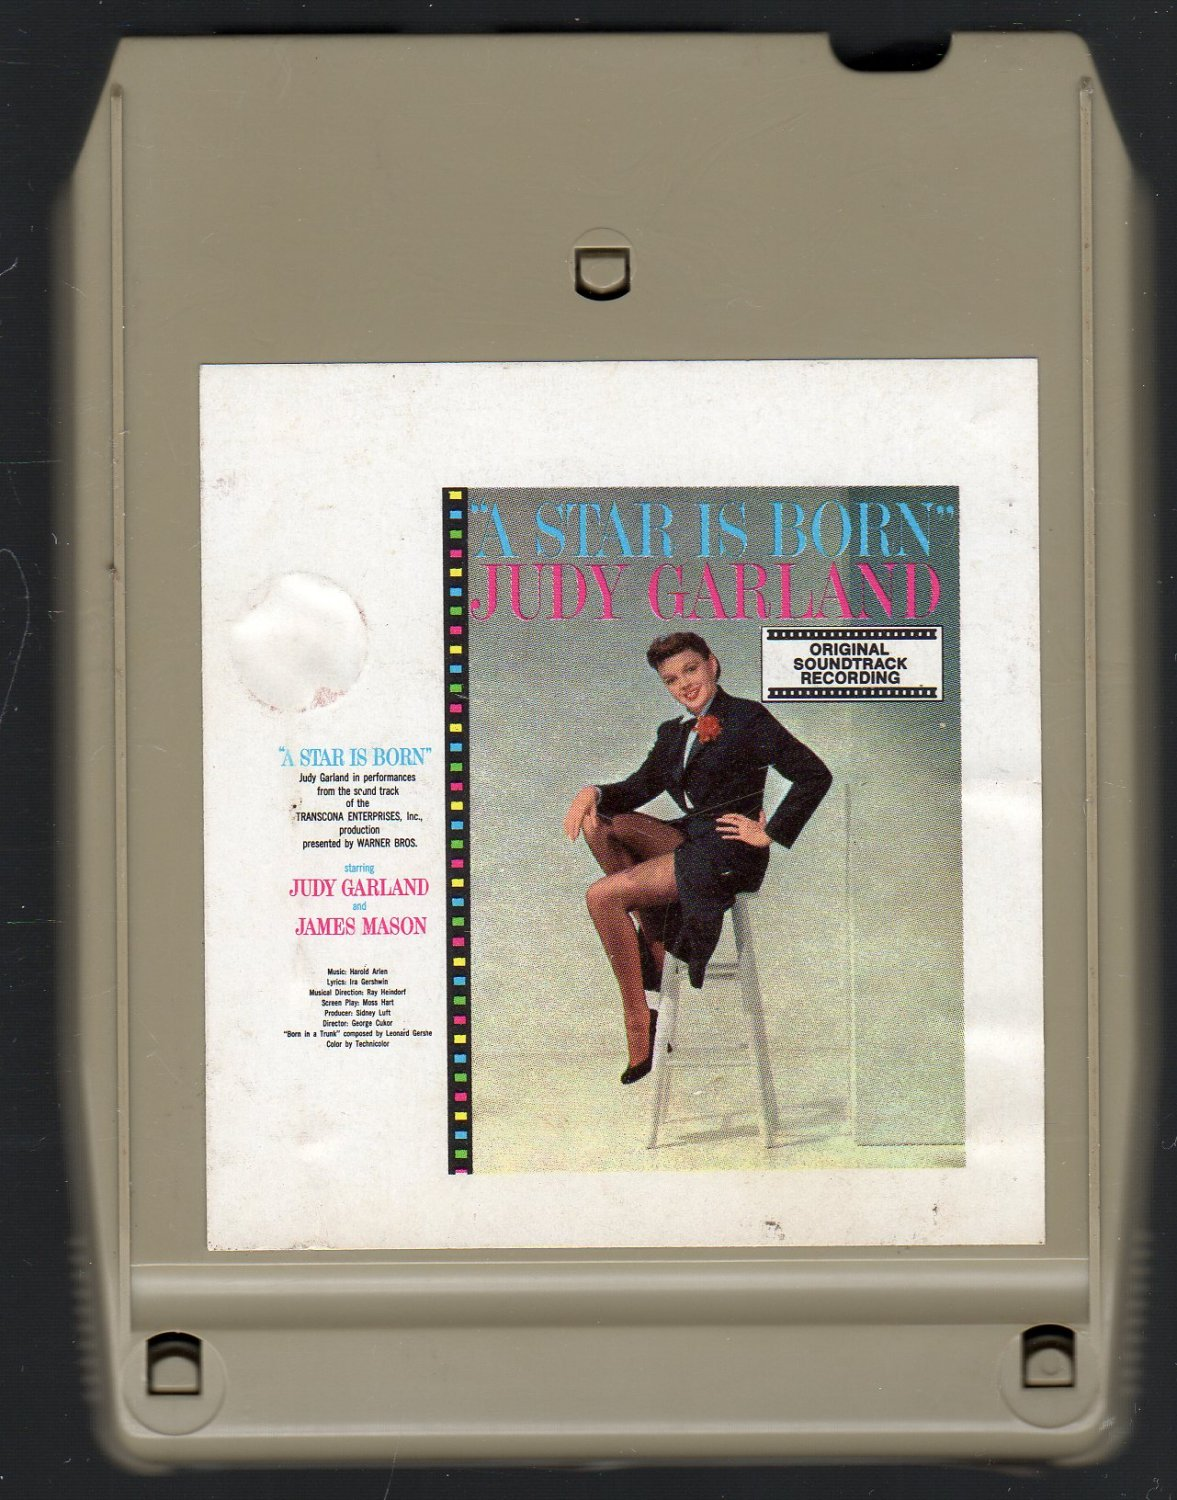 Judy Garland - A Star Is Born From Soundtrack 8-track tape